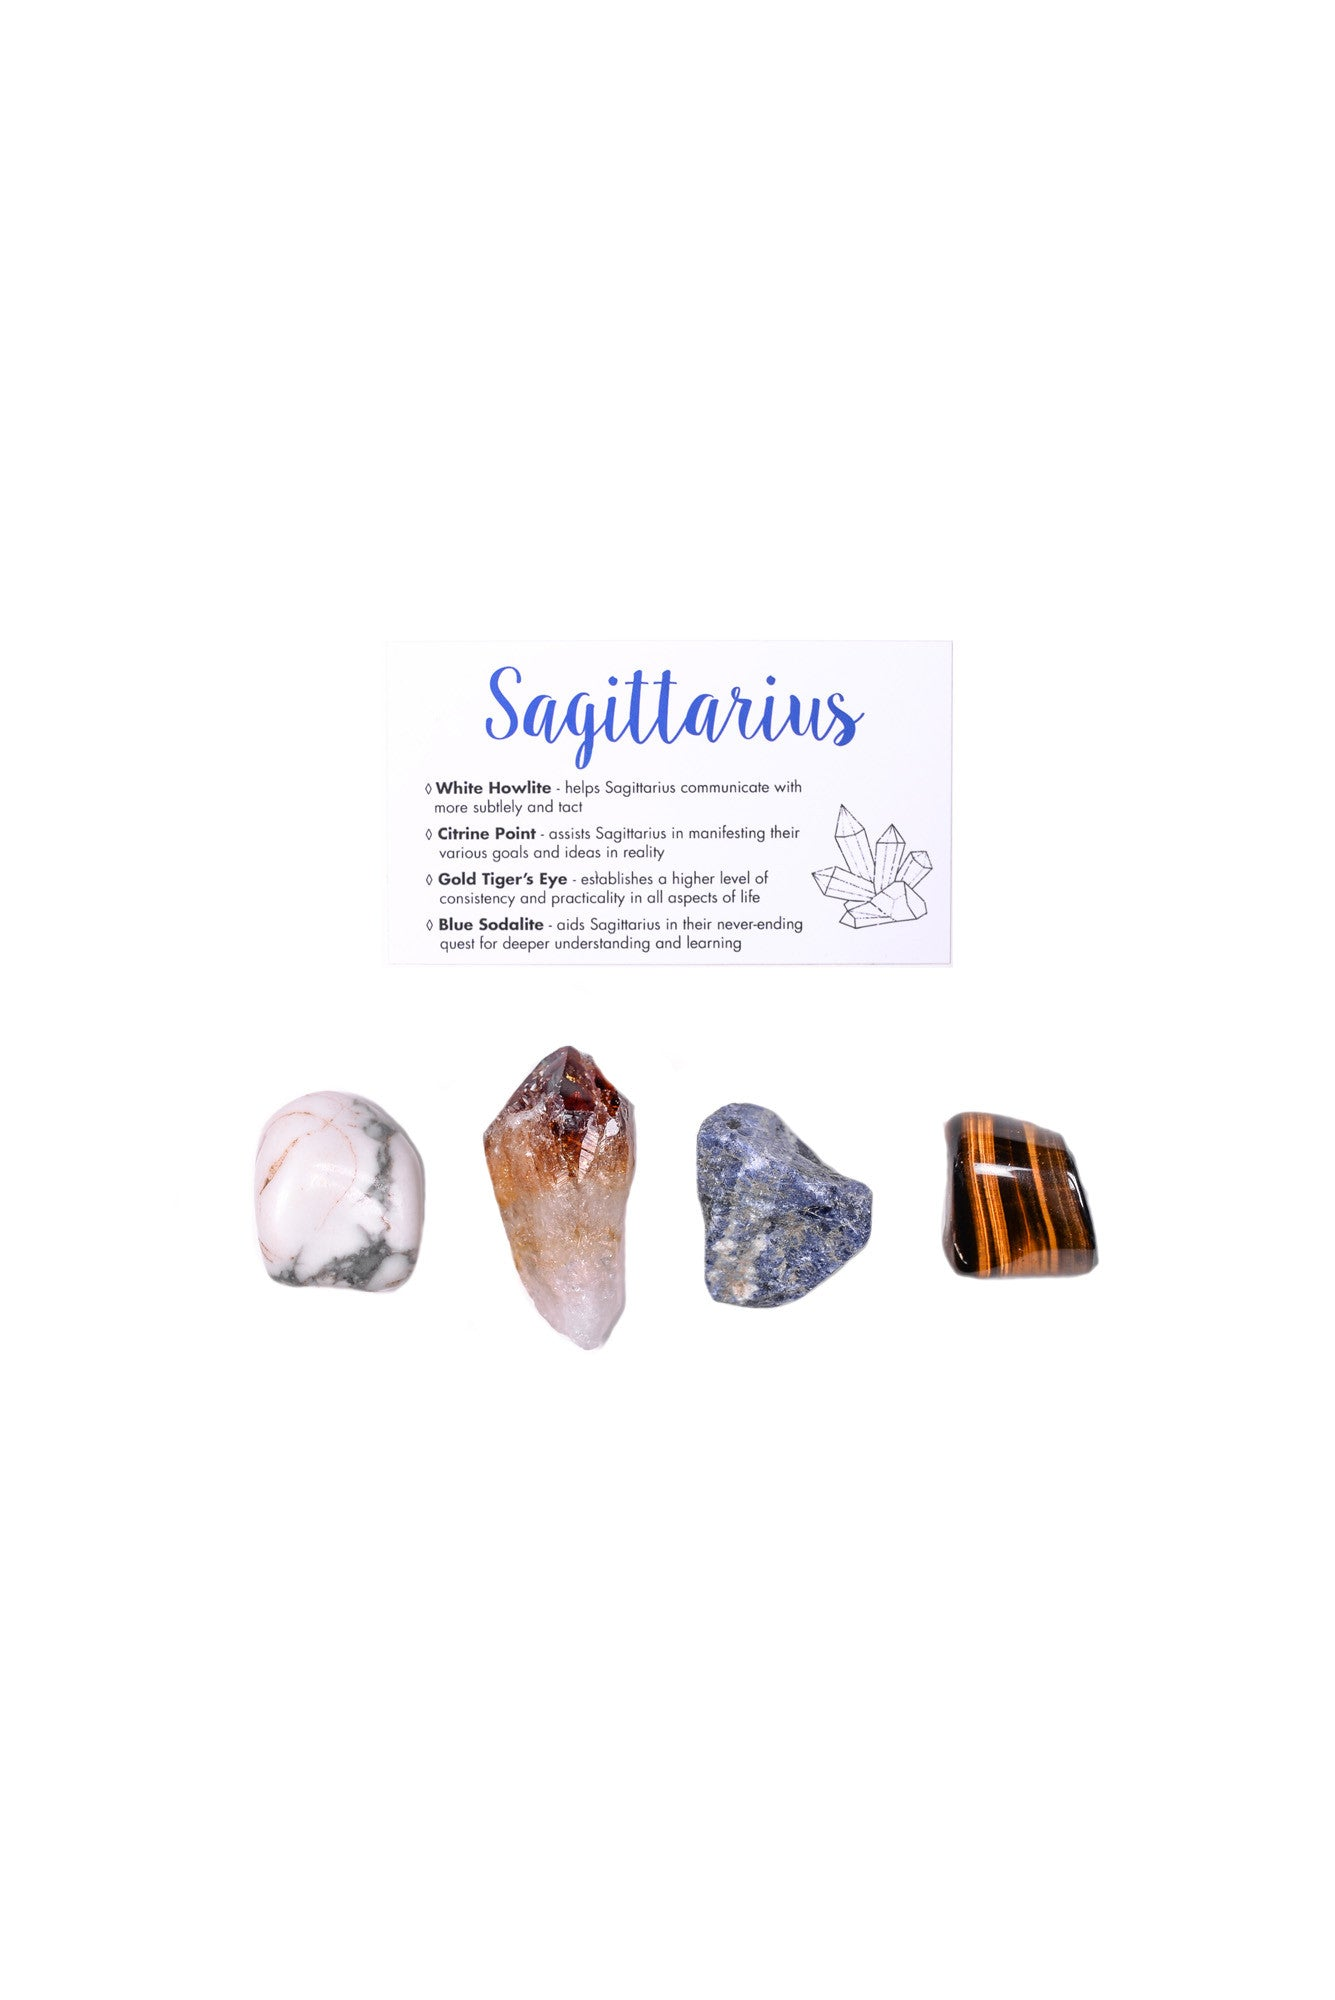 Sagittarius crystal set white howlite citrine point gold tigers eye blue sodalite